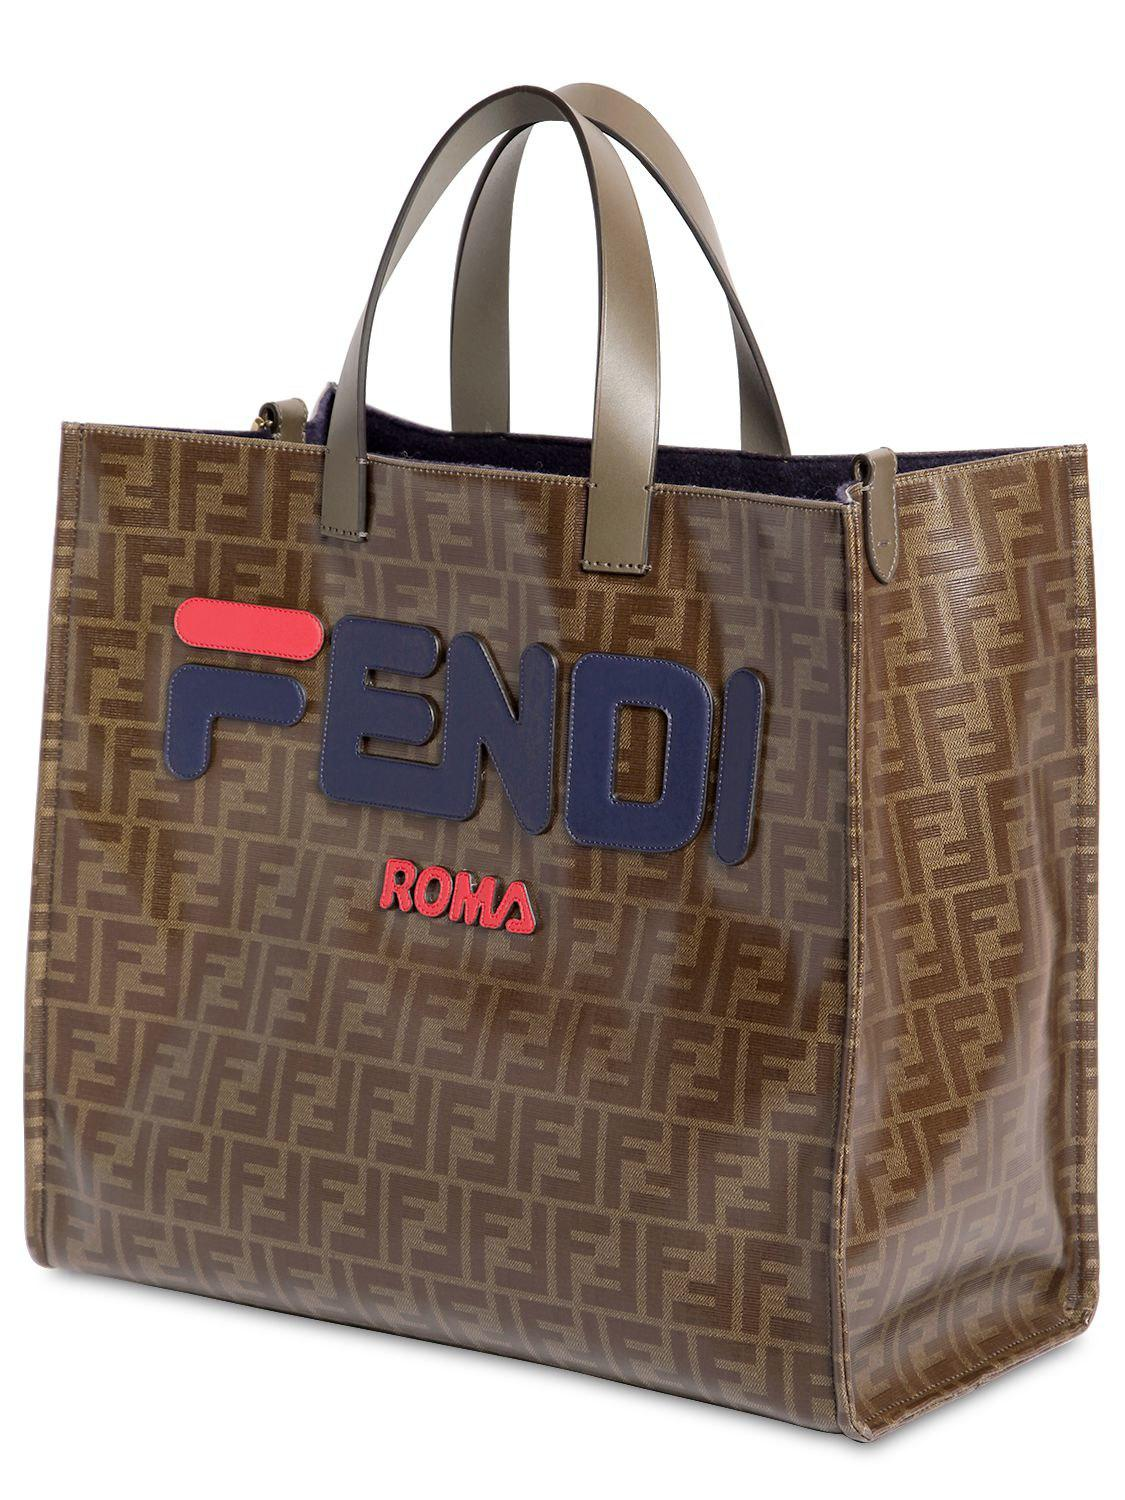 2e00fc857e Fendi - Brown Mania Small Coated Canvas Tote Bag - Lyst. View fullscreen